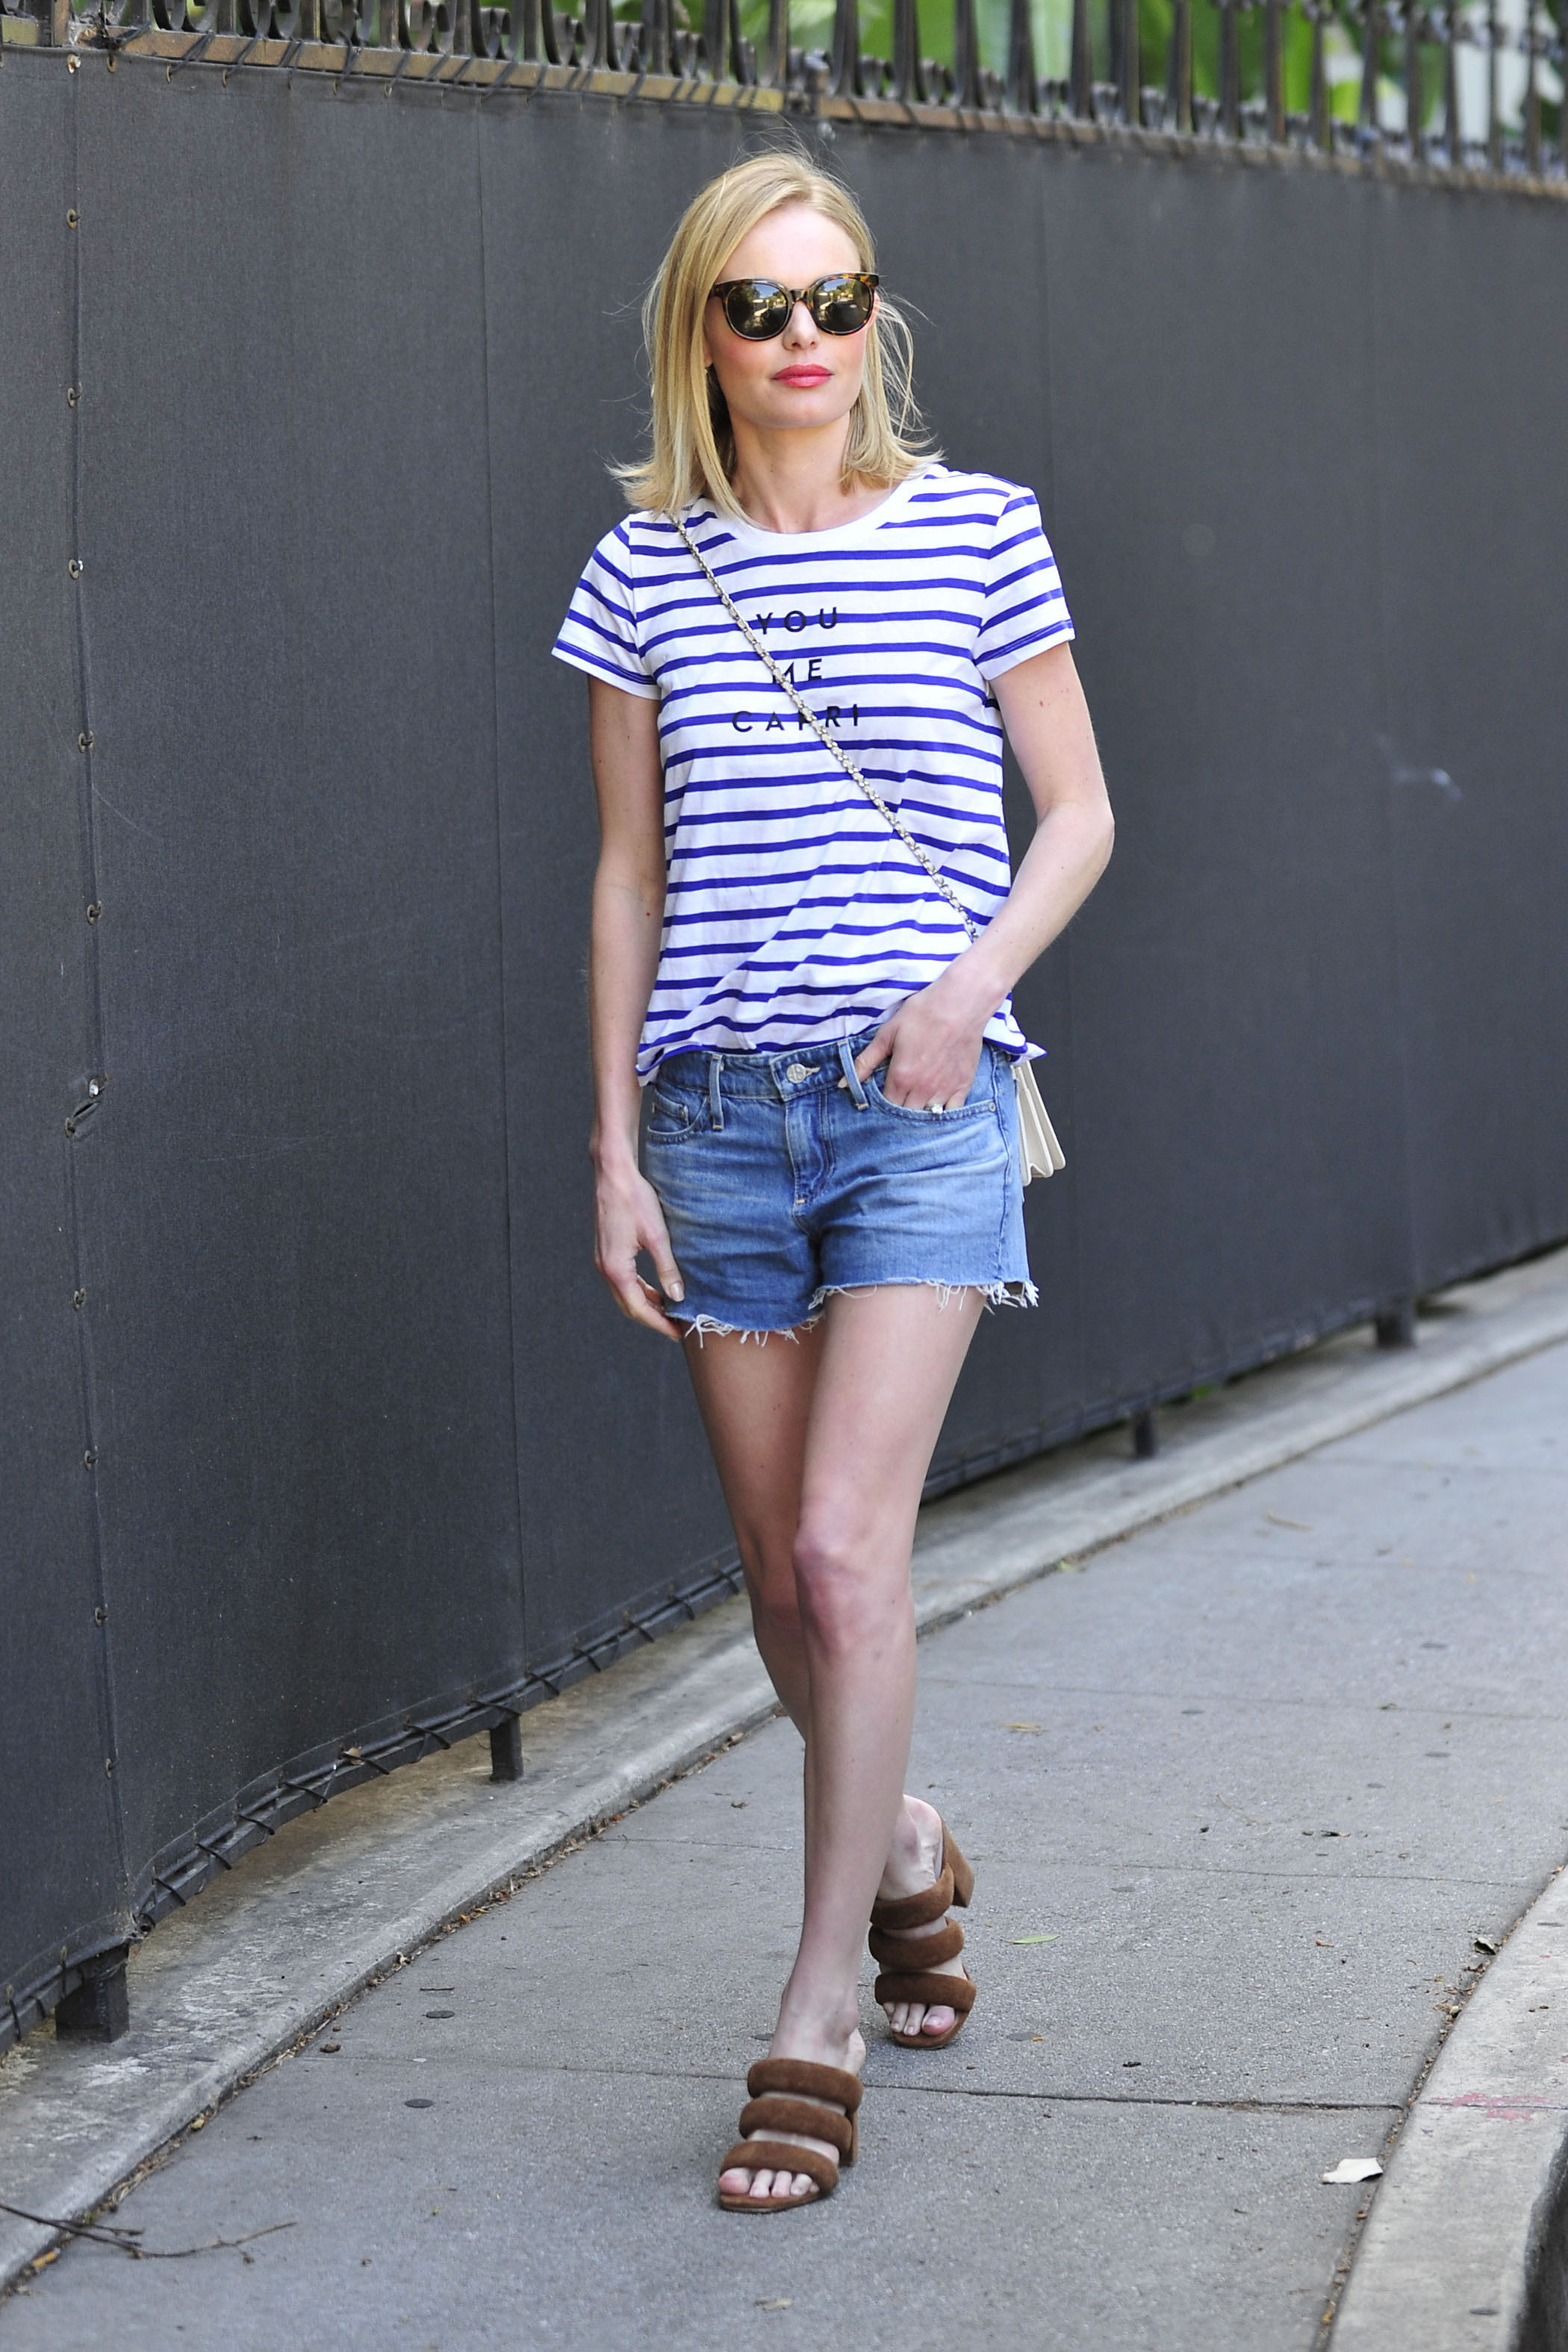 MILLY for DesigNation You Me Capri Striped Tee, $40, at Kohl's